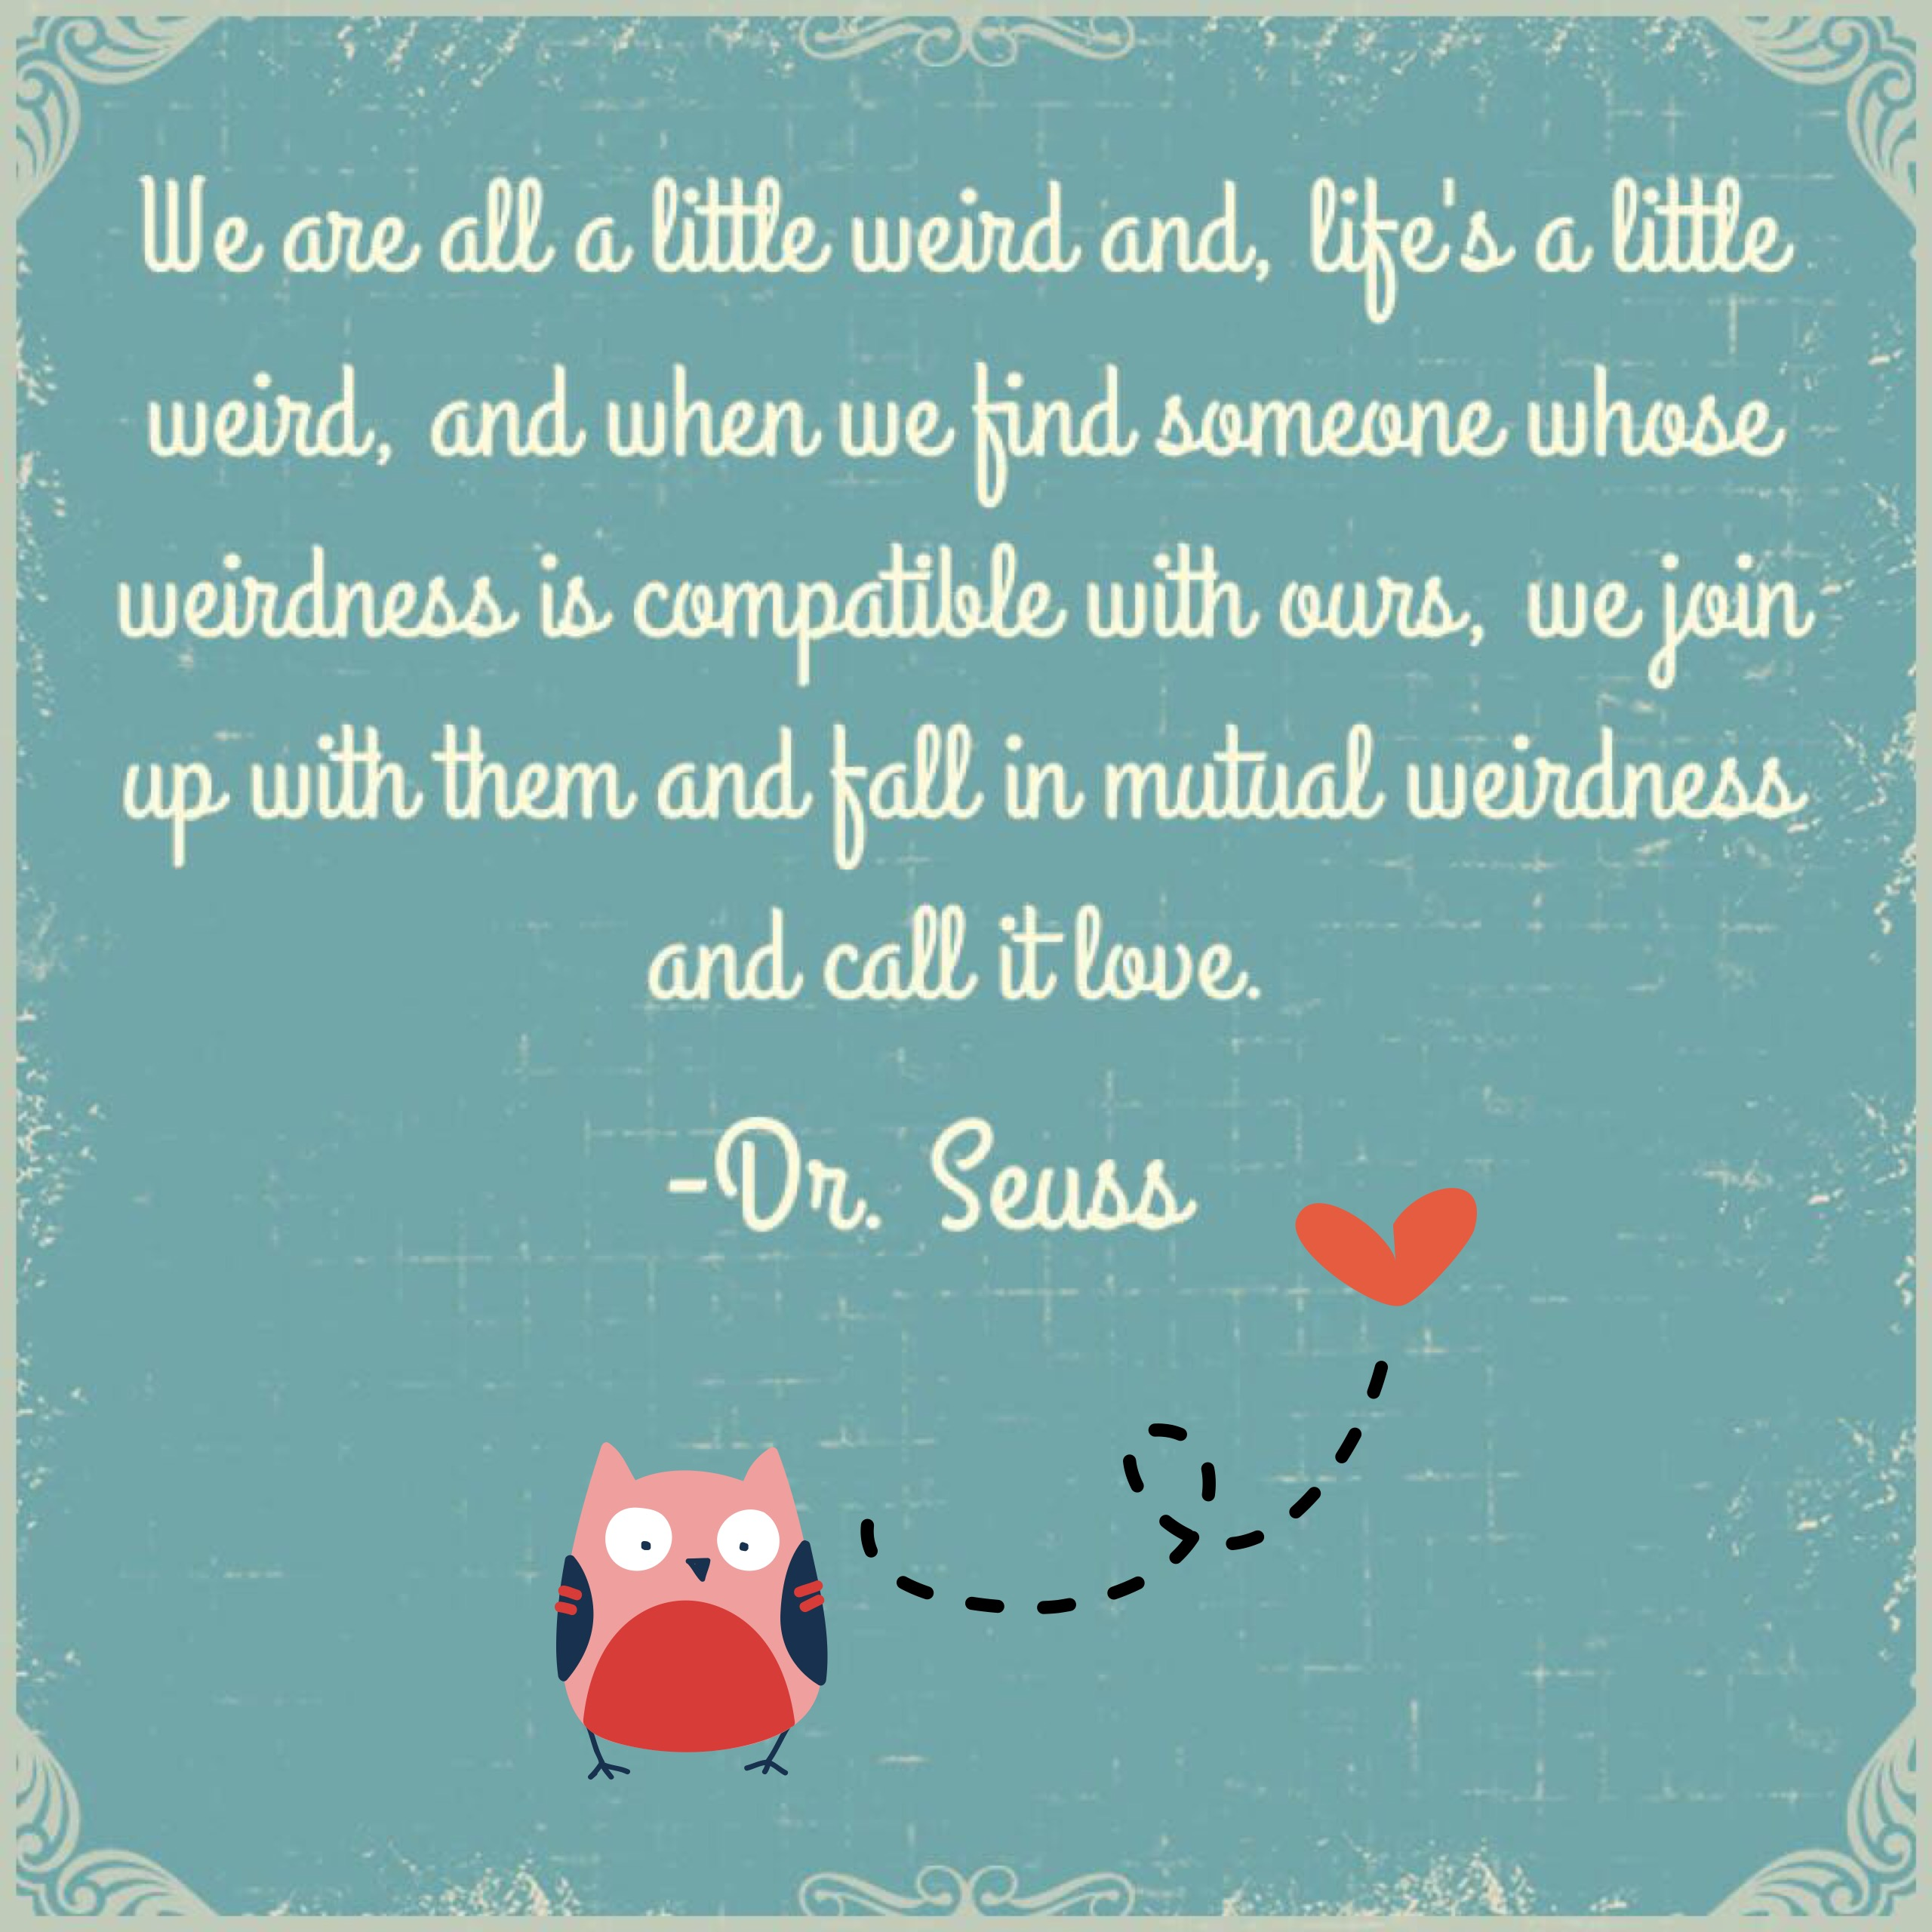 Dr Seuss Quotes About Love Fall In Mutual Weirdness And Call It Love…  The Lone Panda